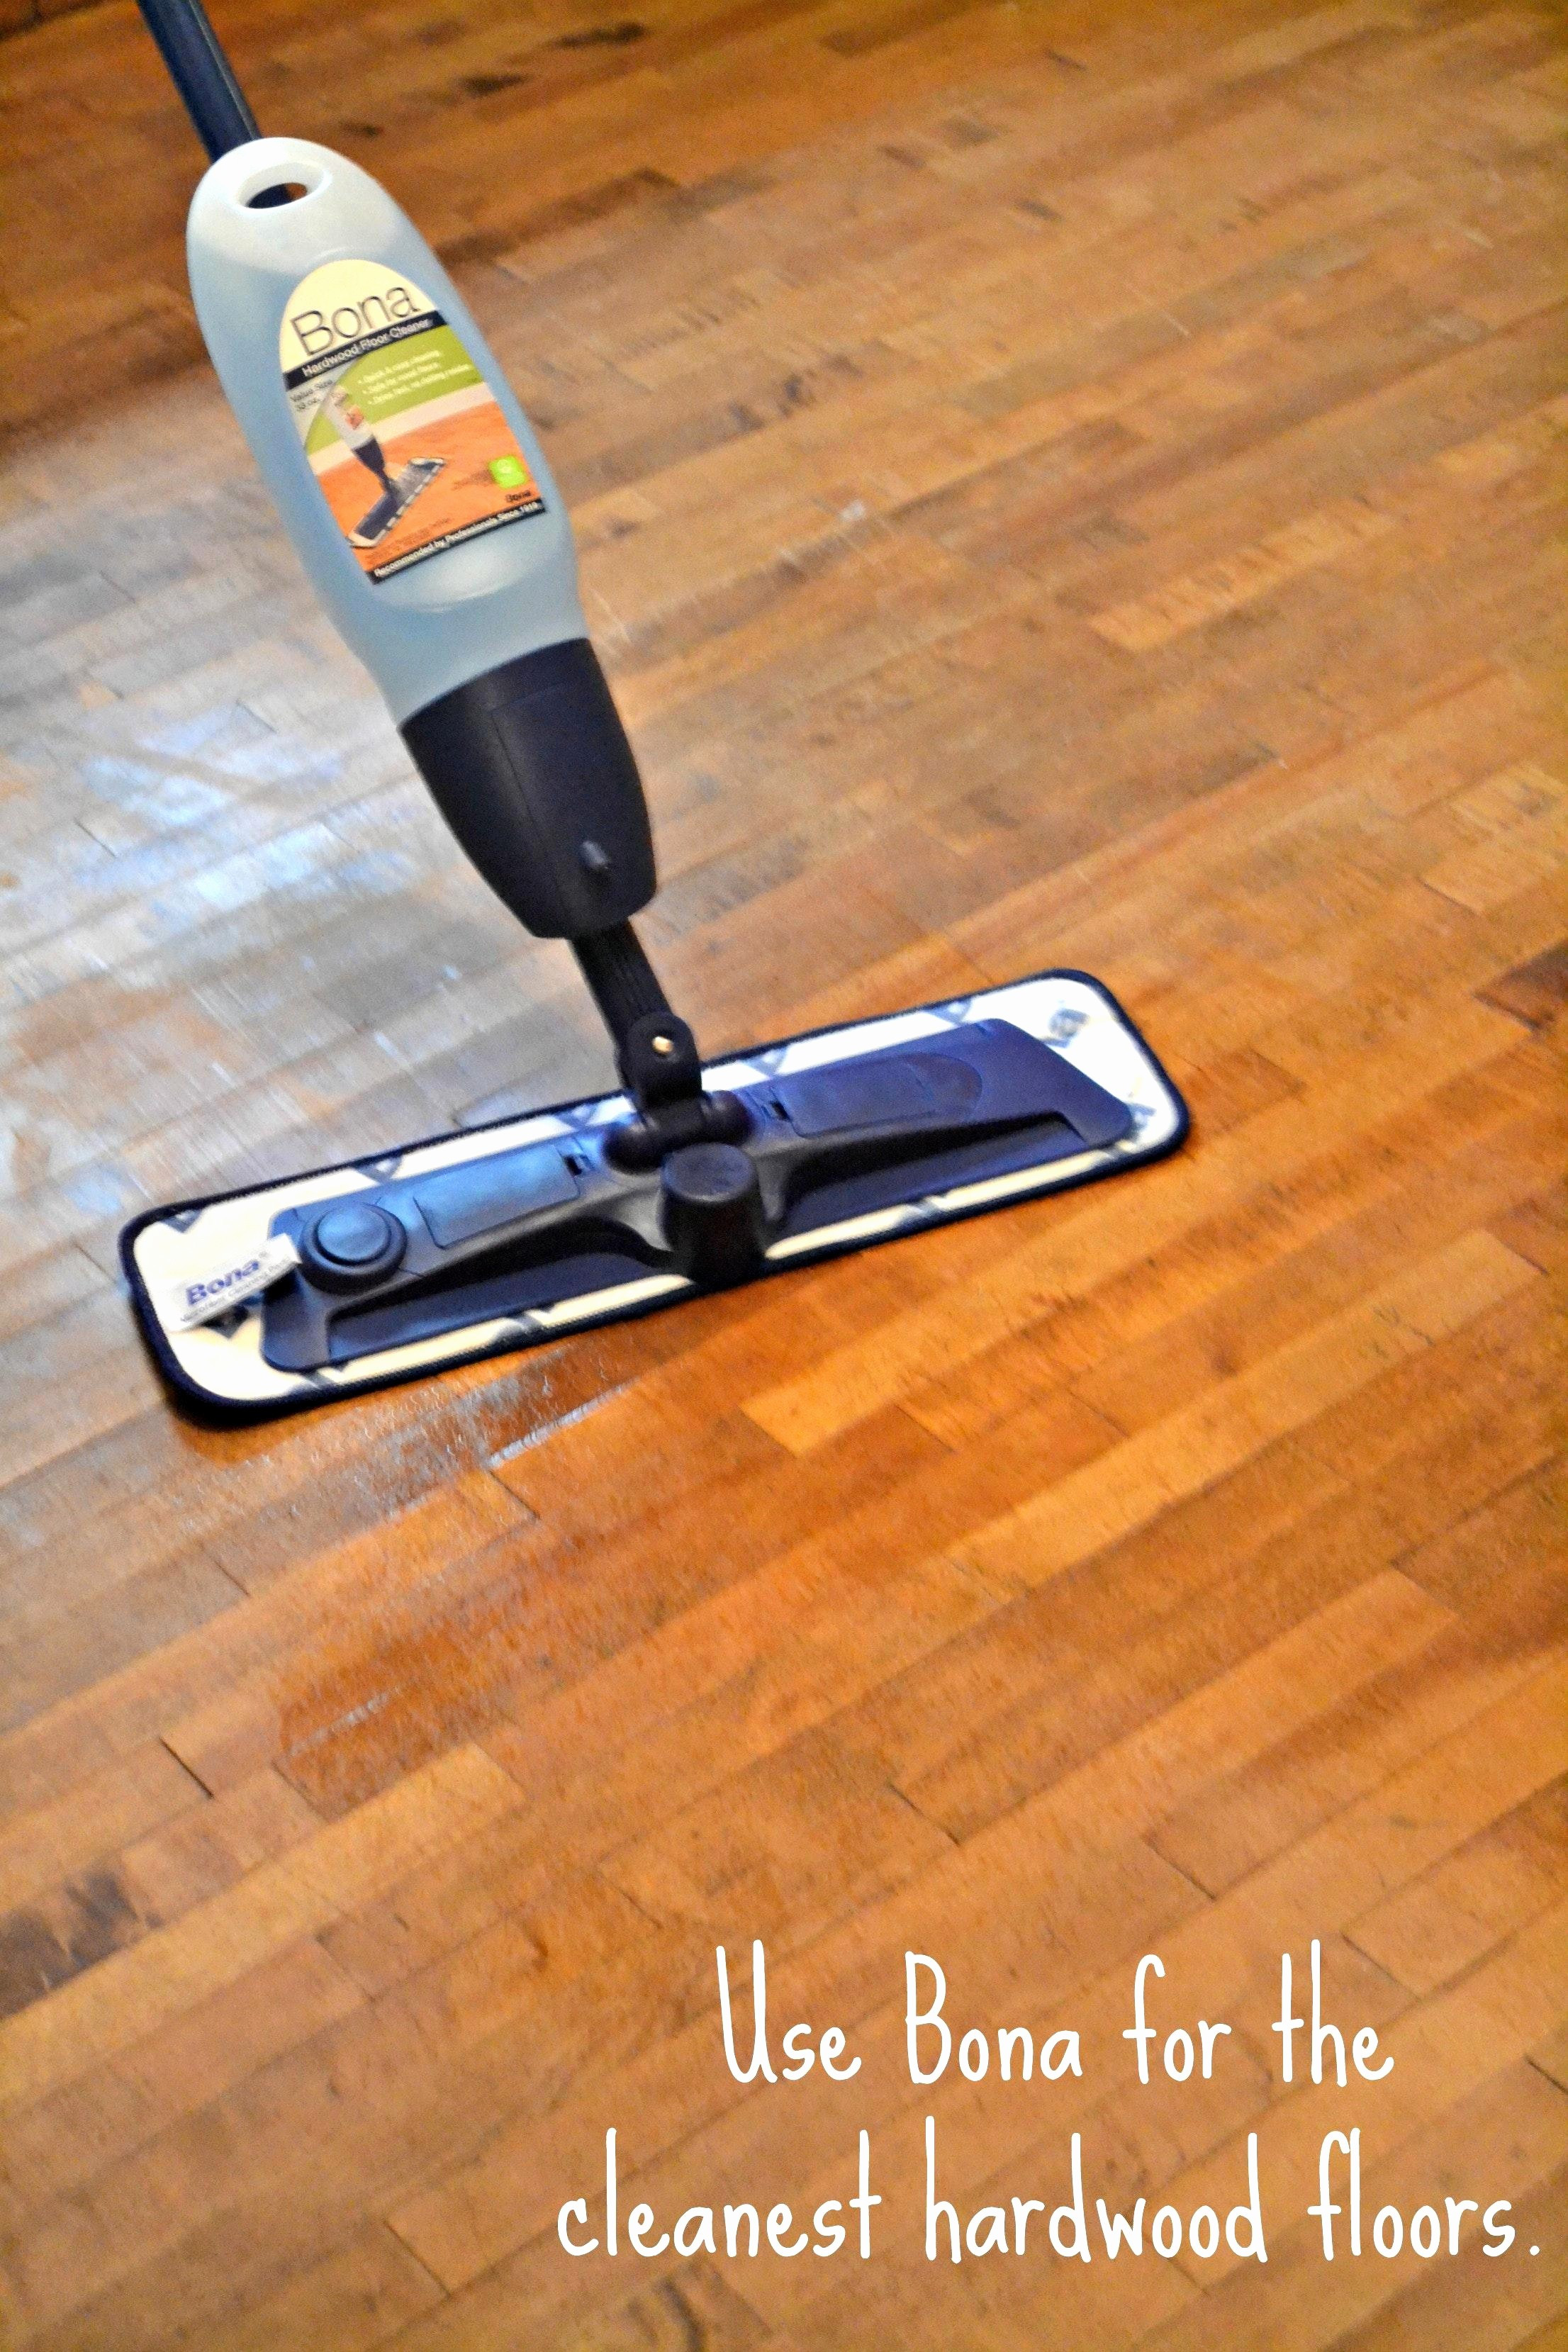 engineered hardwood floor care and maintenance of 16 fresh hardwood floor polish photos dizpos com inside 50 unique how to clean hardwood floors with vinegar pics 50 s